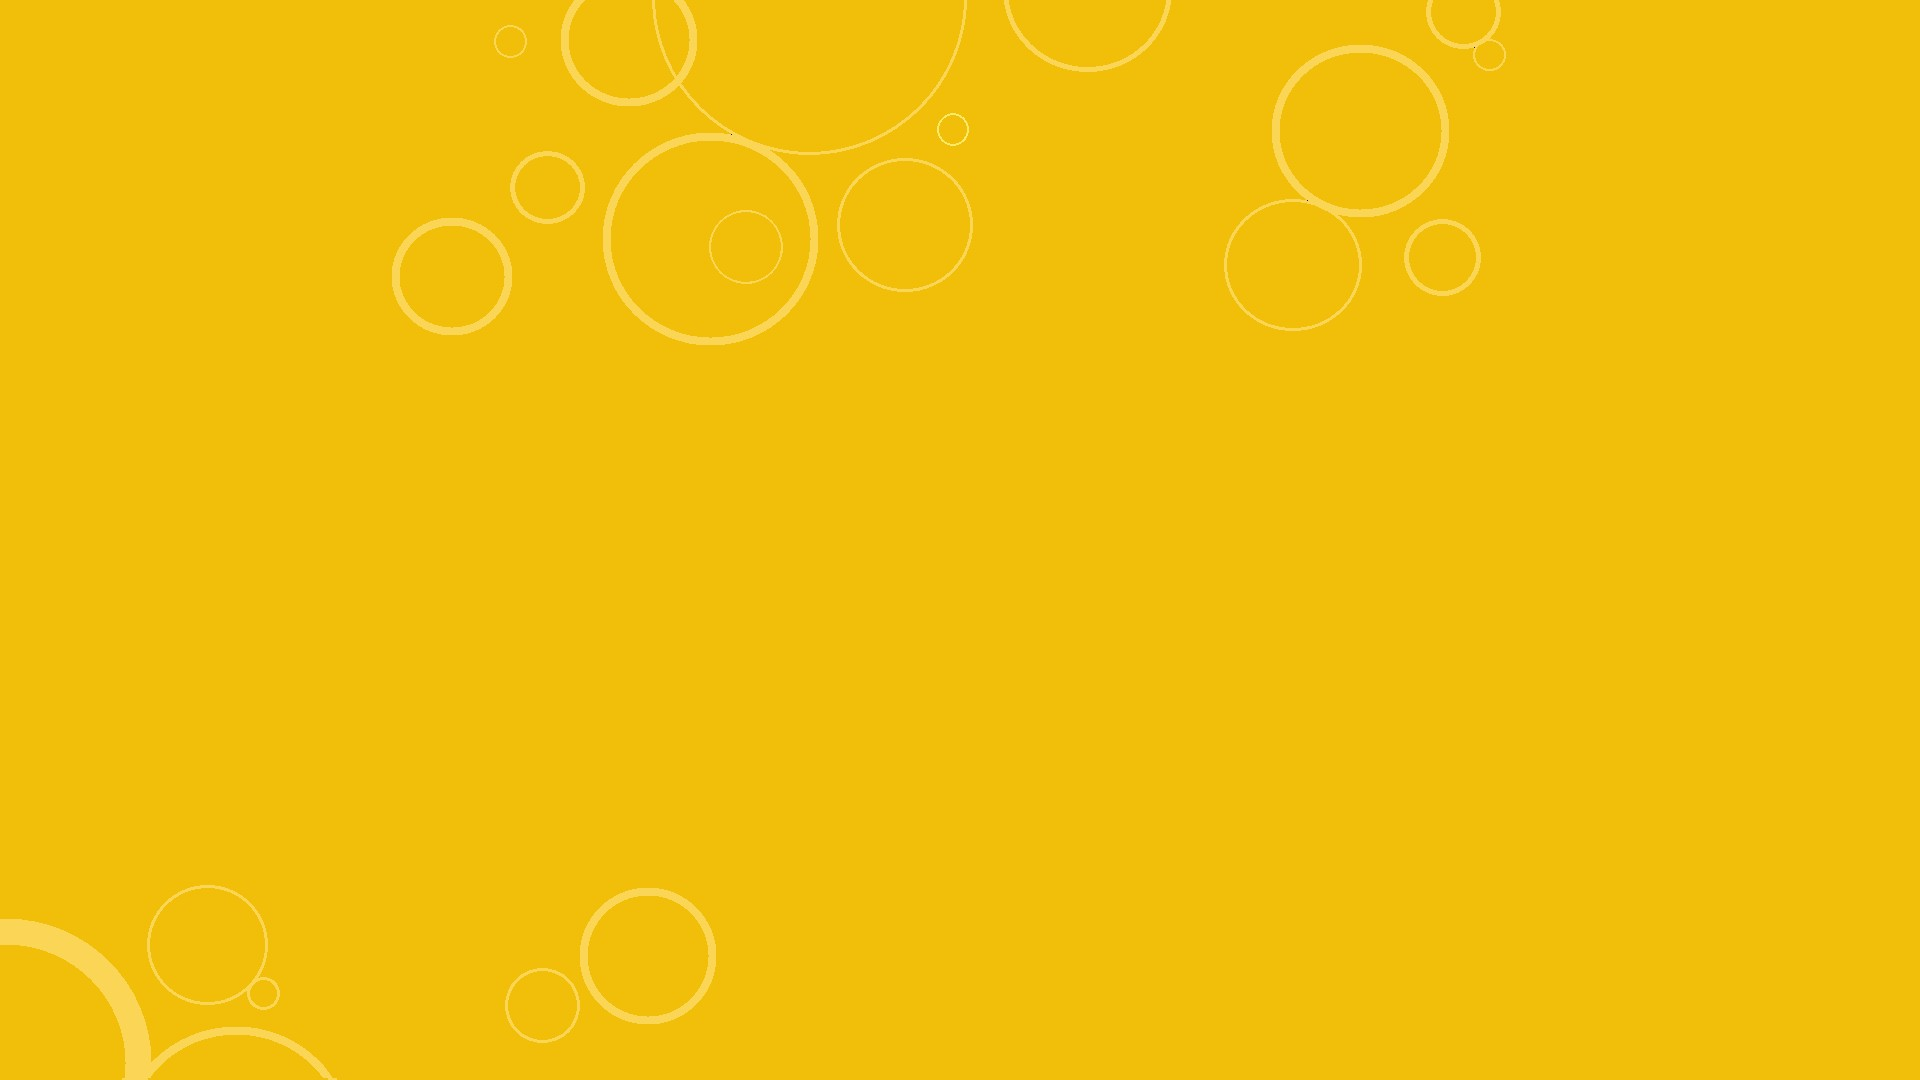 Yellow Background 183 ① Download Free Cool High Resolution